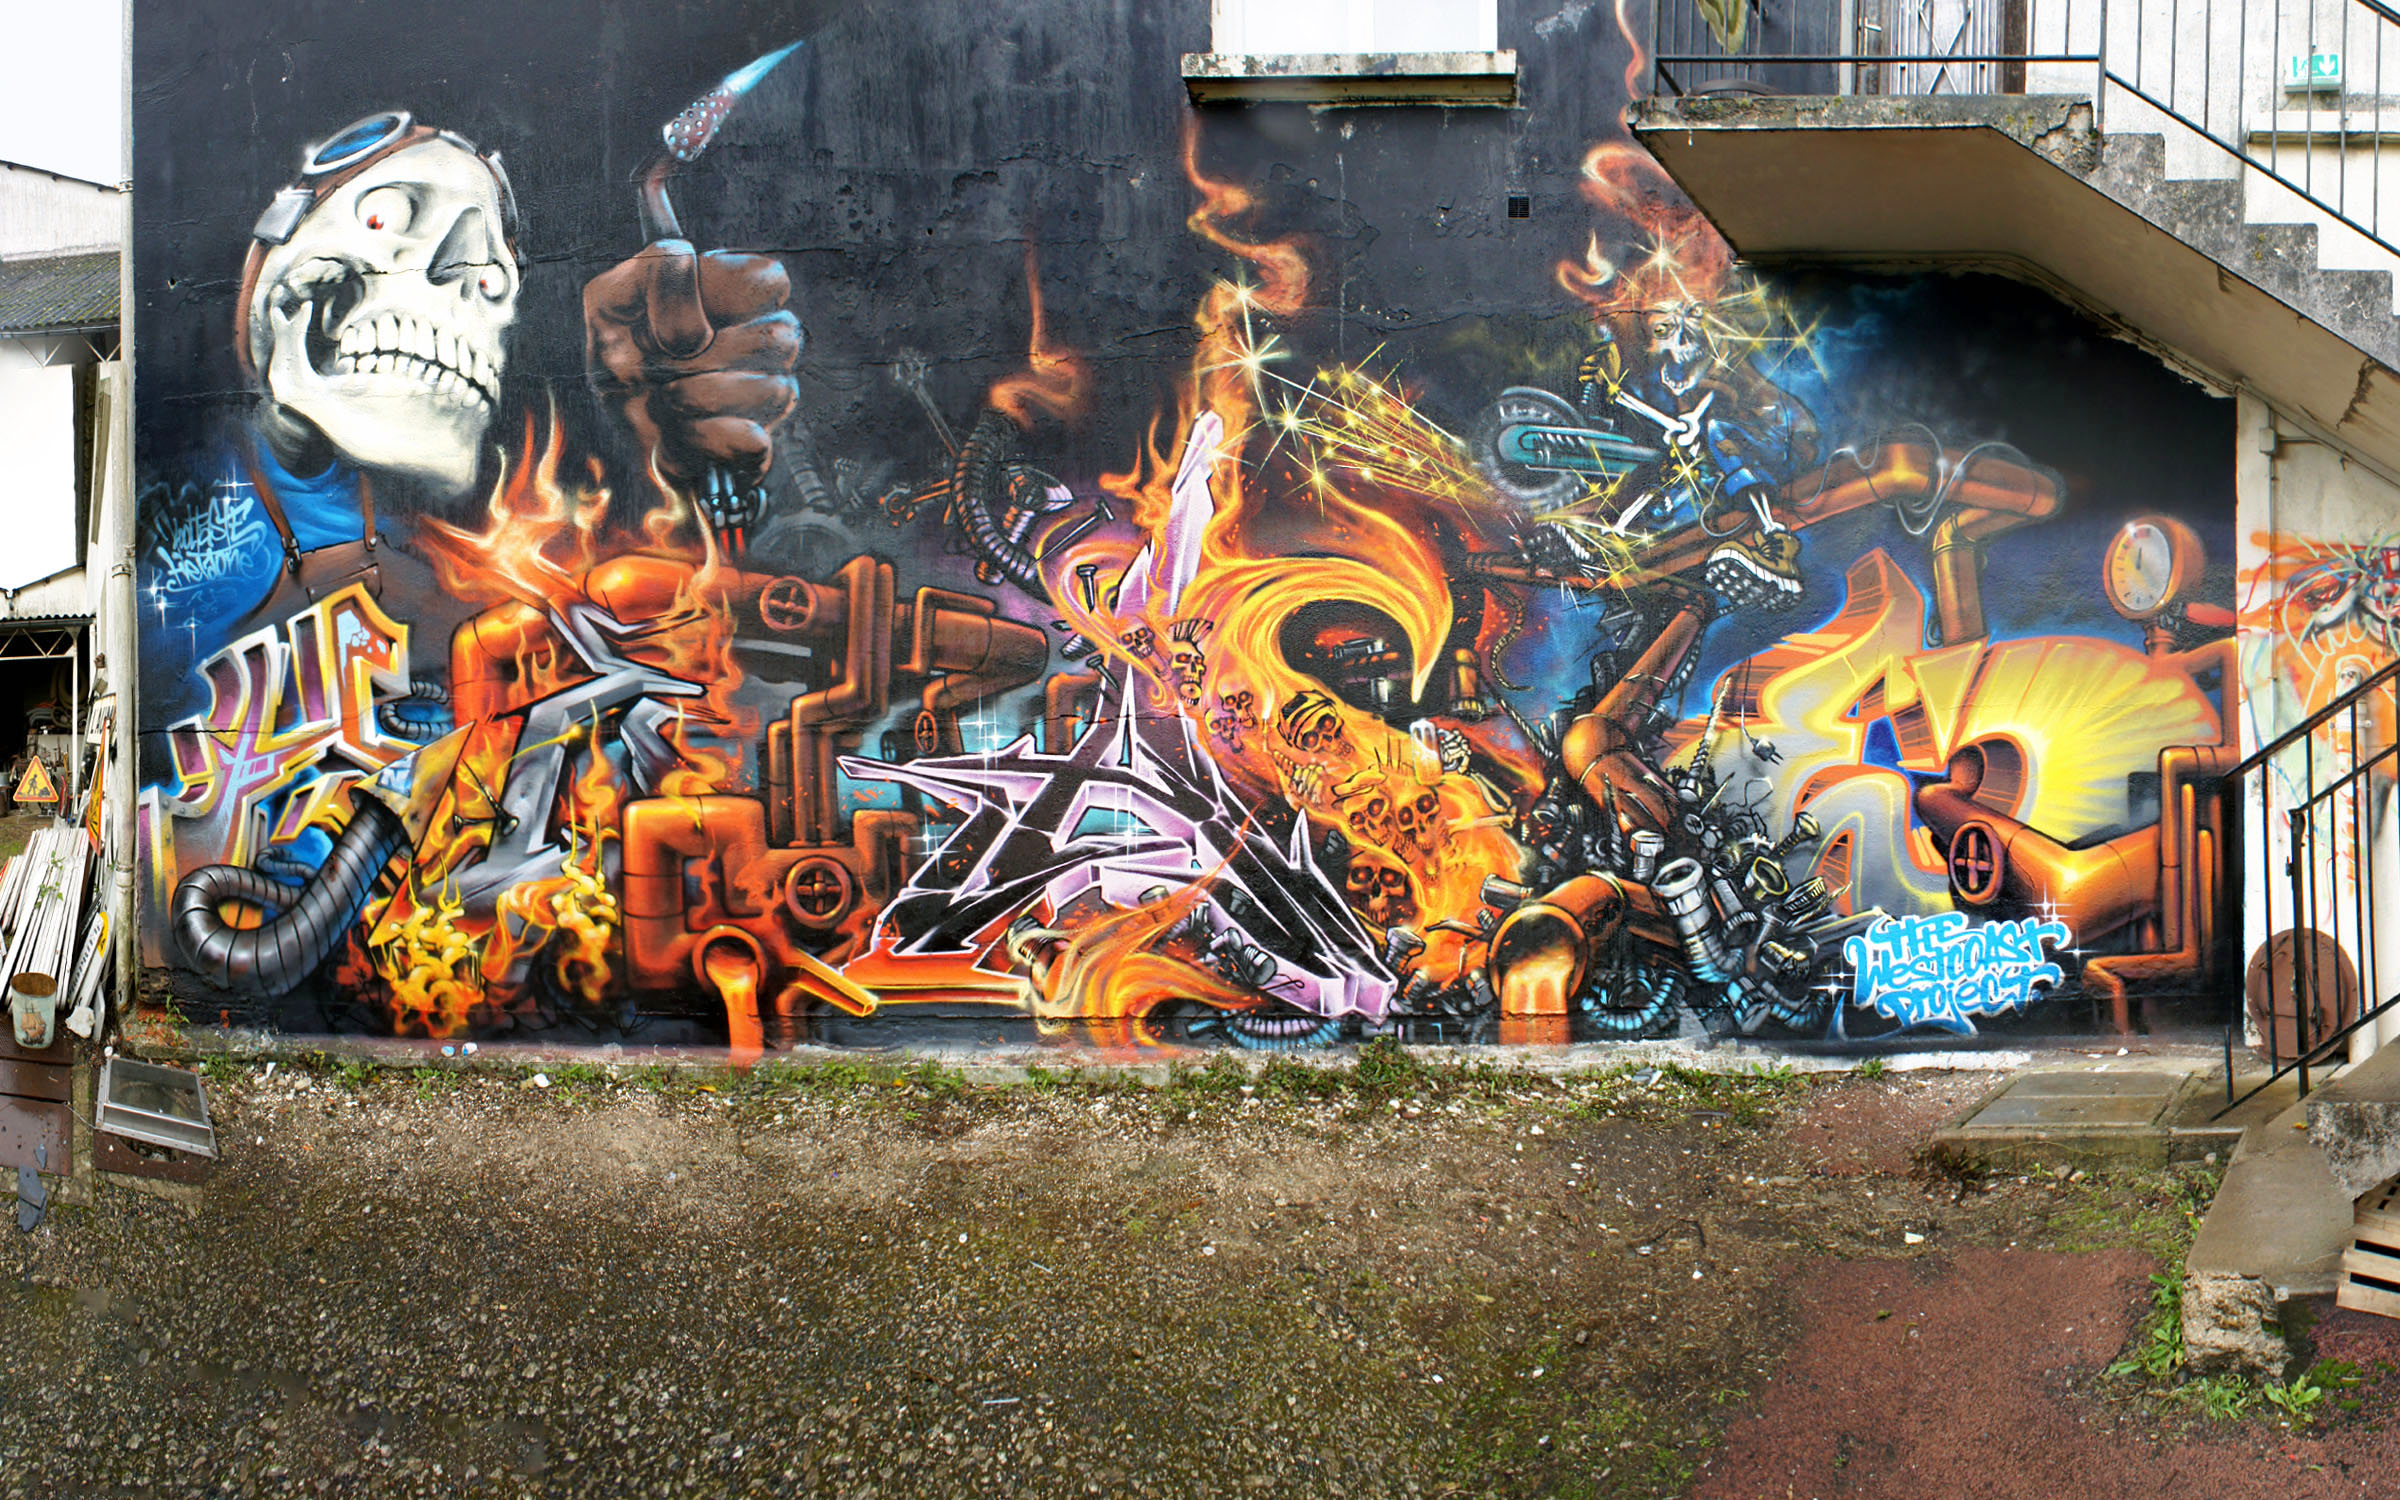 Heta-One-Westcoast-project-Poitiers